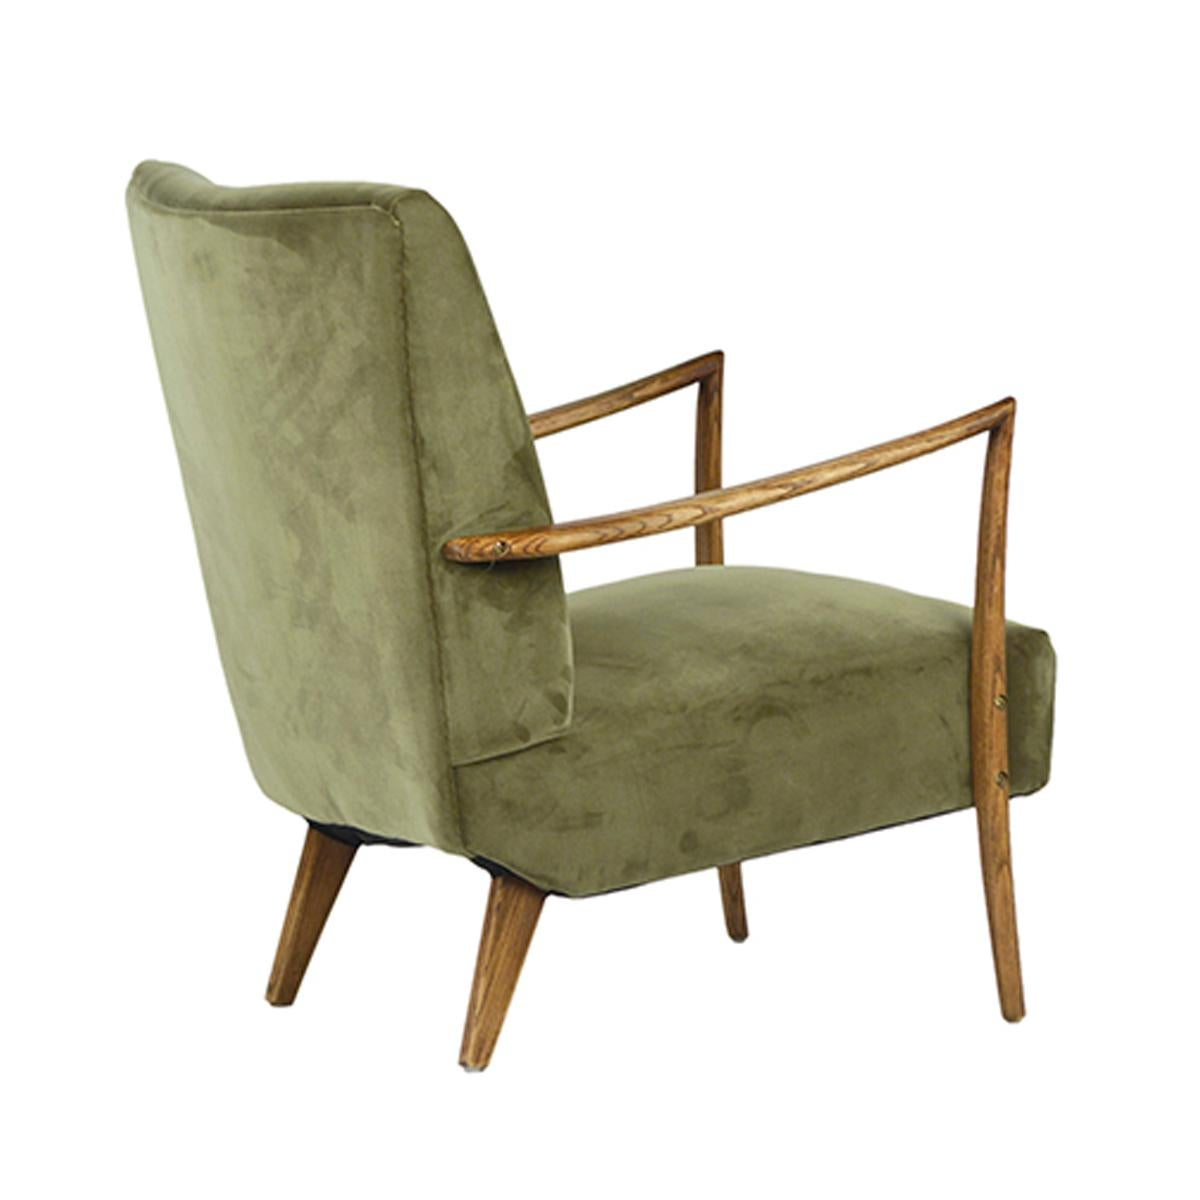 Bon Midcentury Style Arm Chair With Green Velvet Upholstery And Solid Hardwood  Arms And Legs. Comfy